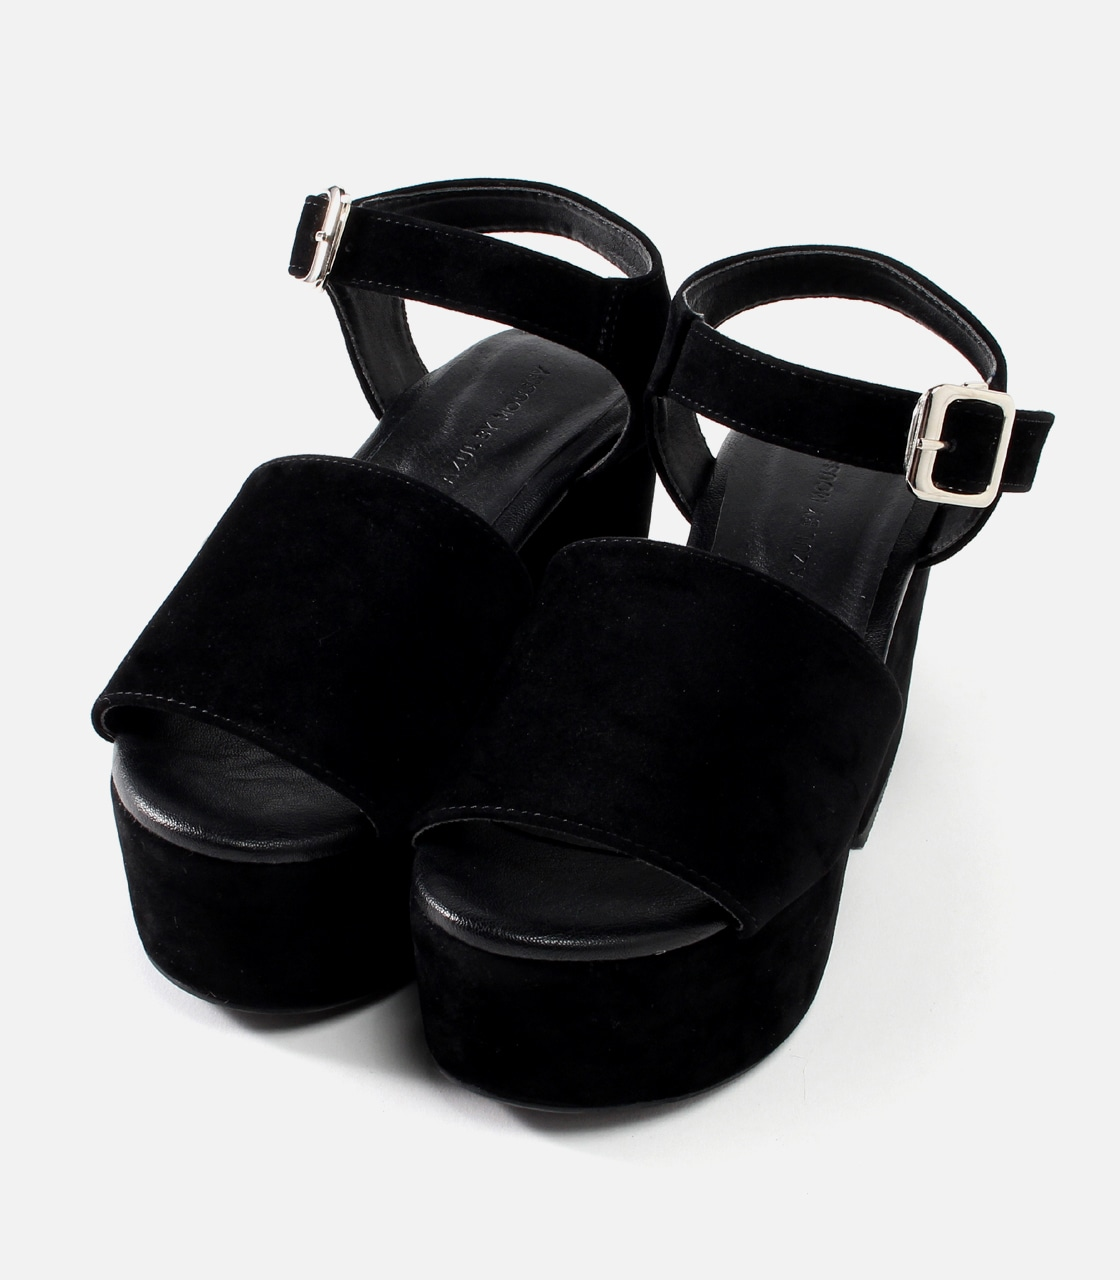 【AZUL BY MOUSSY】ベロア厚底サンダル 詳細画像 BLK 1